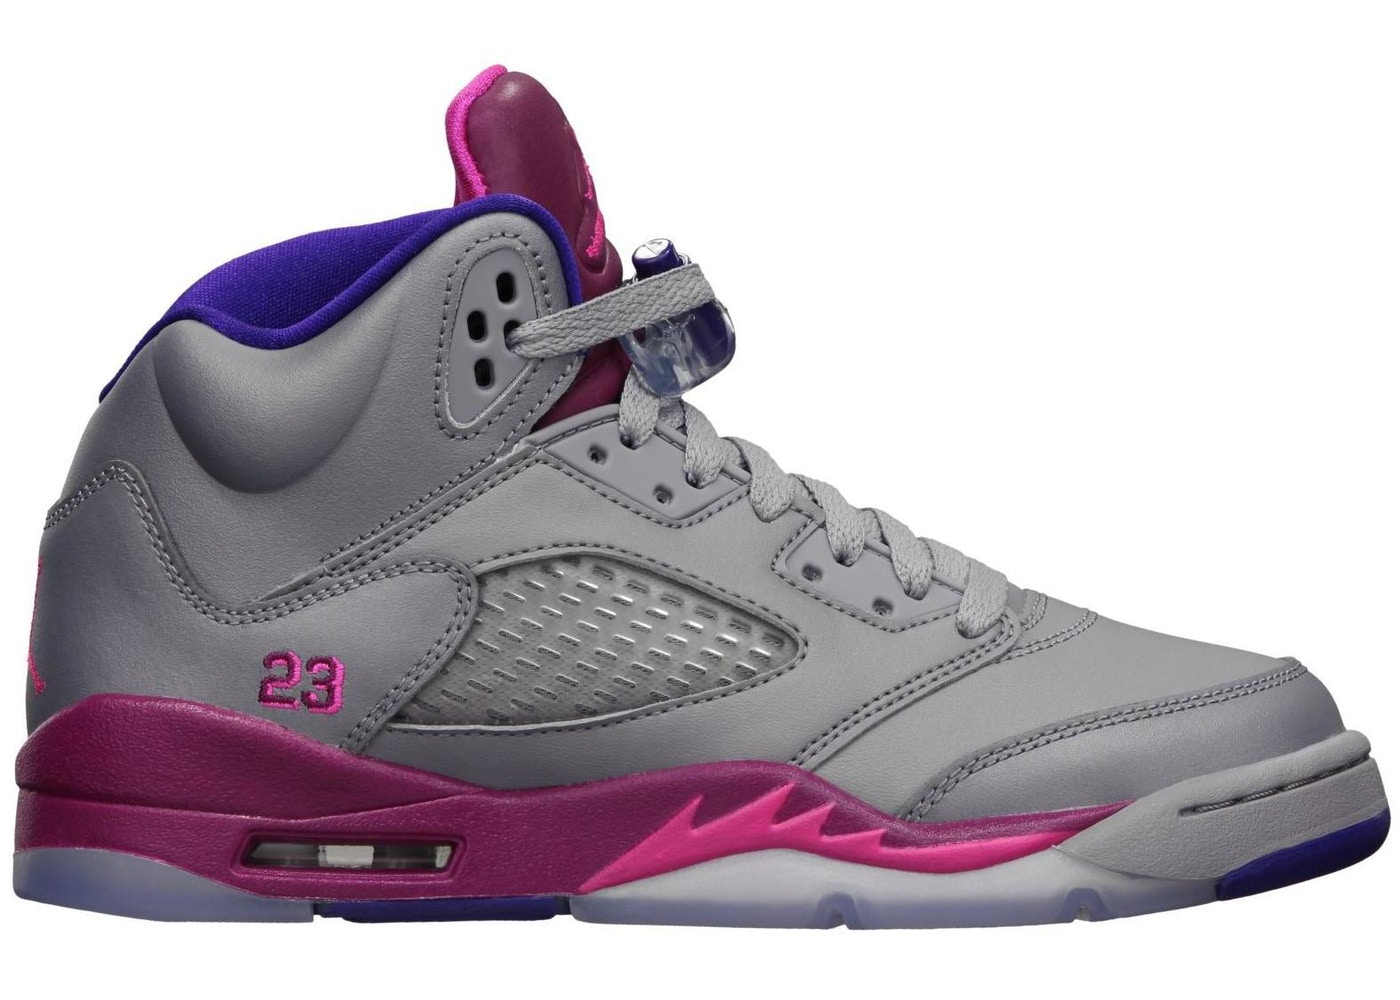 c17c51bda52f Jordan 5 Retro Cement Grey Pink (GS) - 440892-009